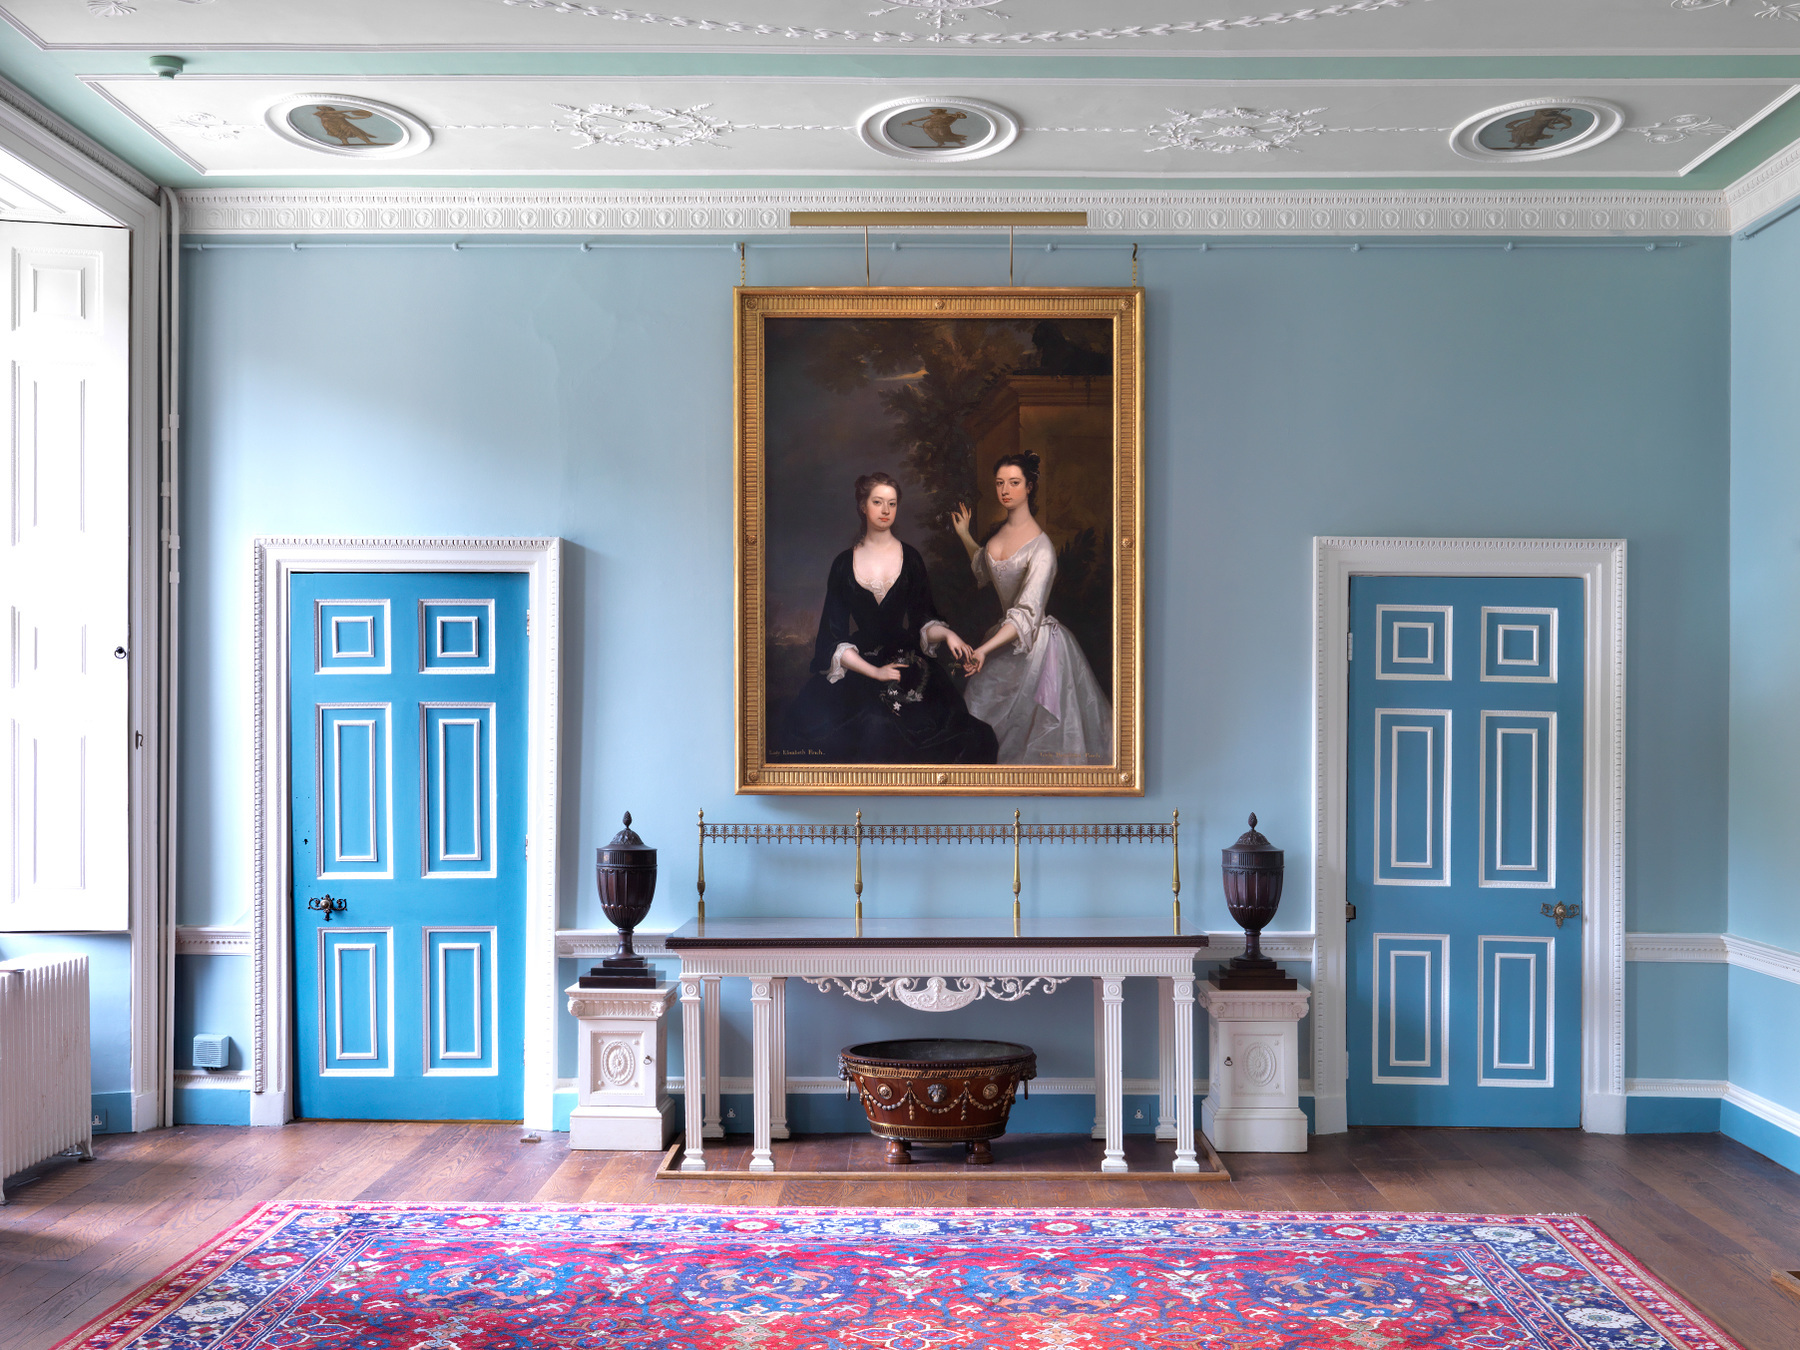 blue room interior at kenwood house